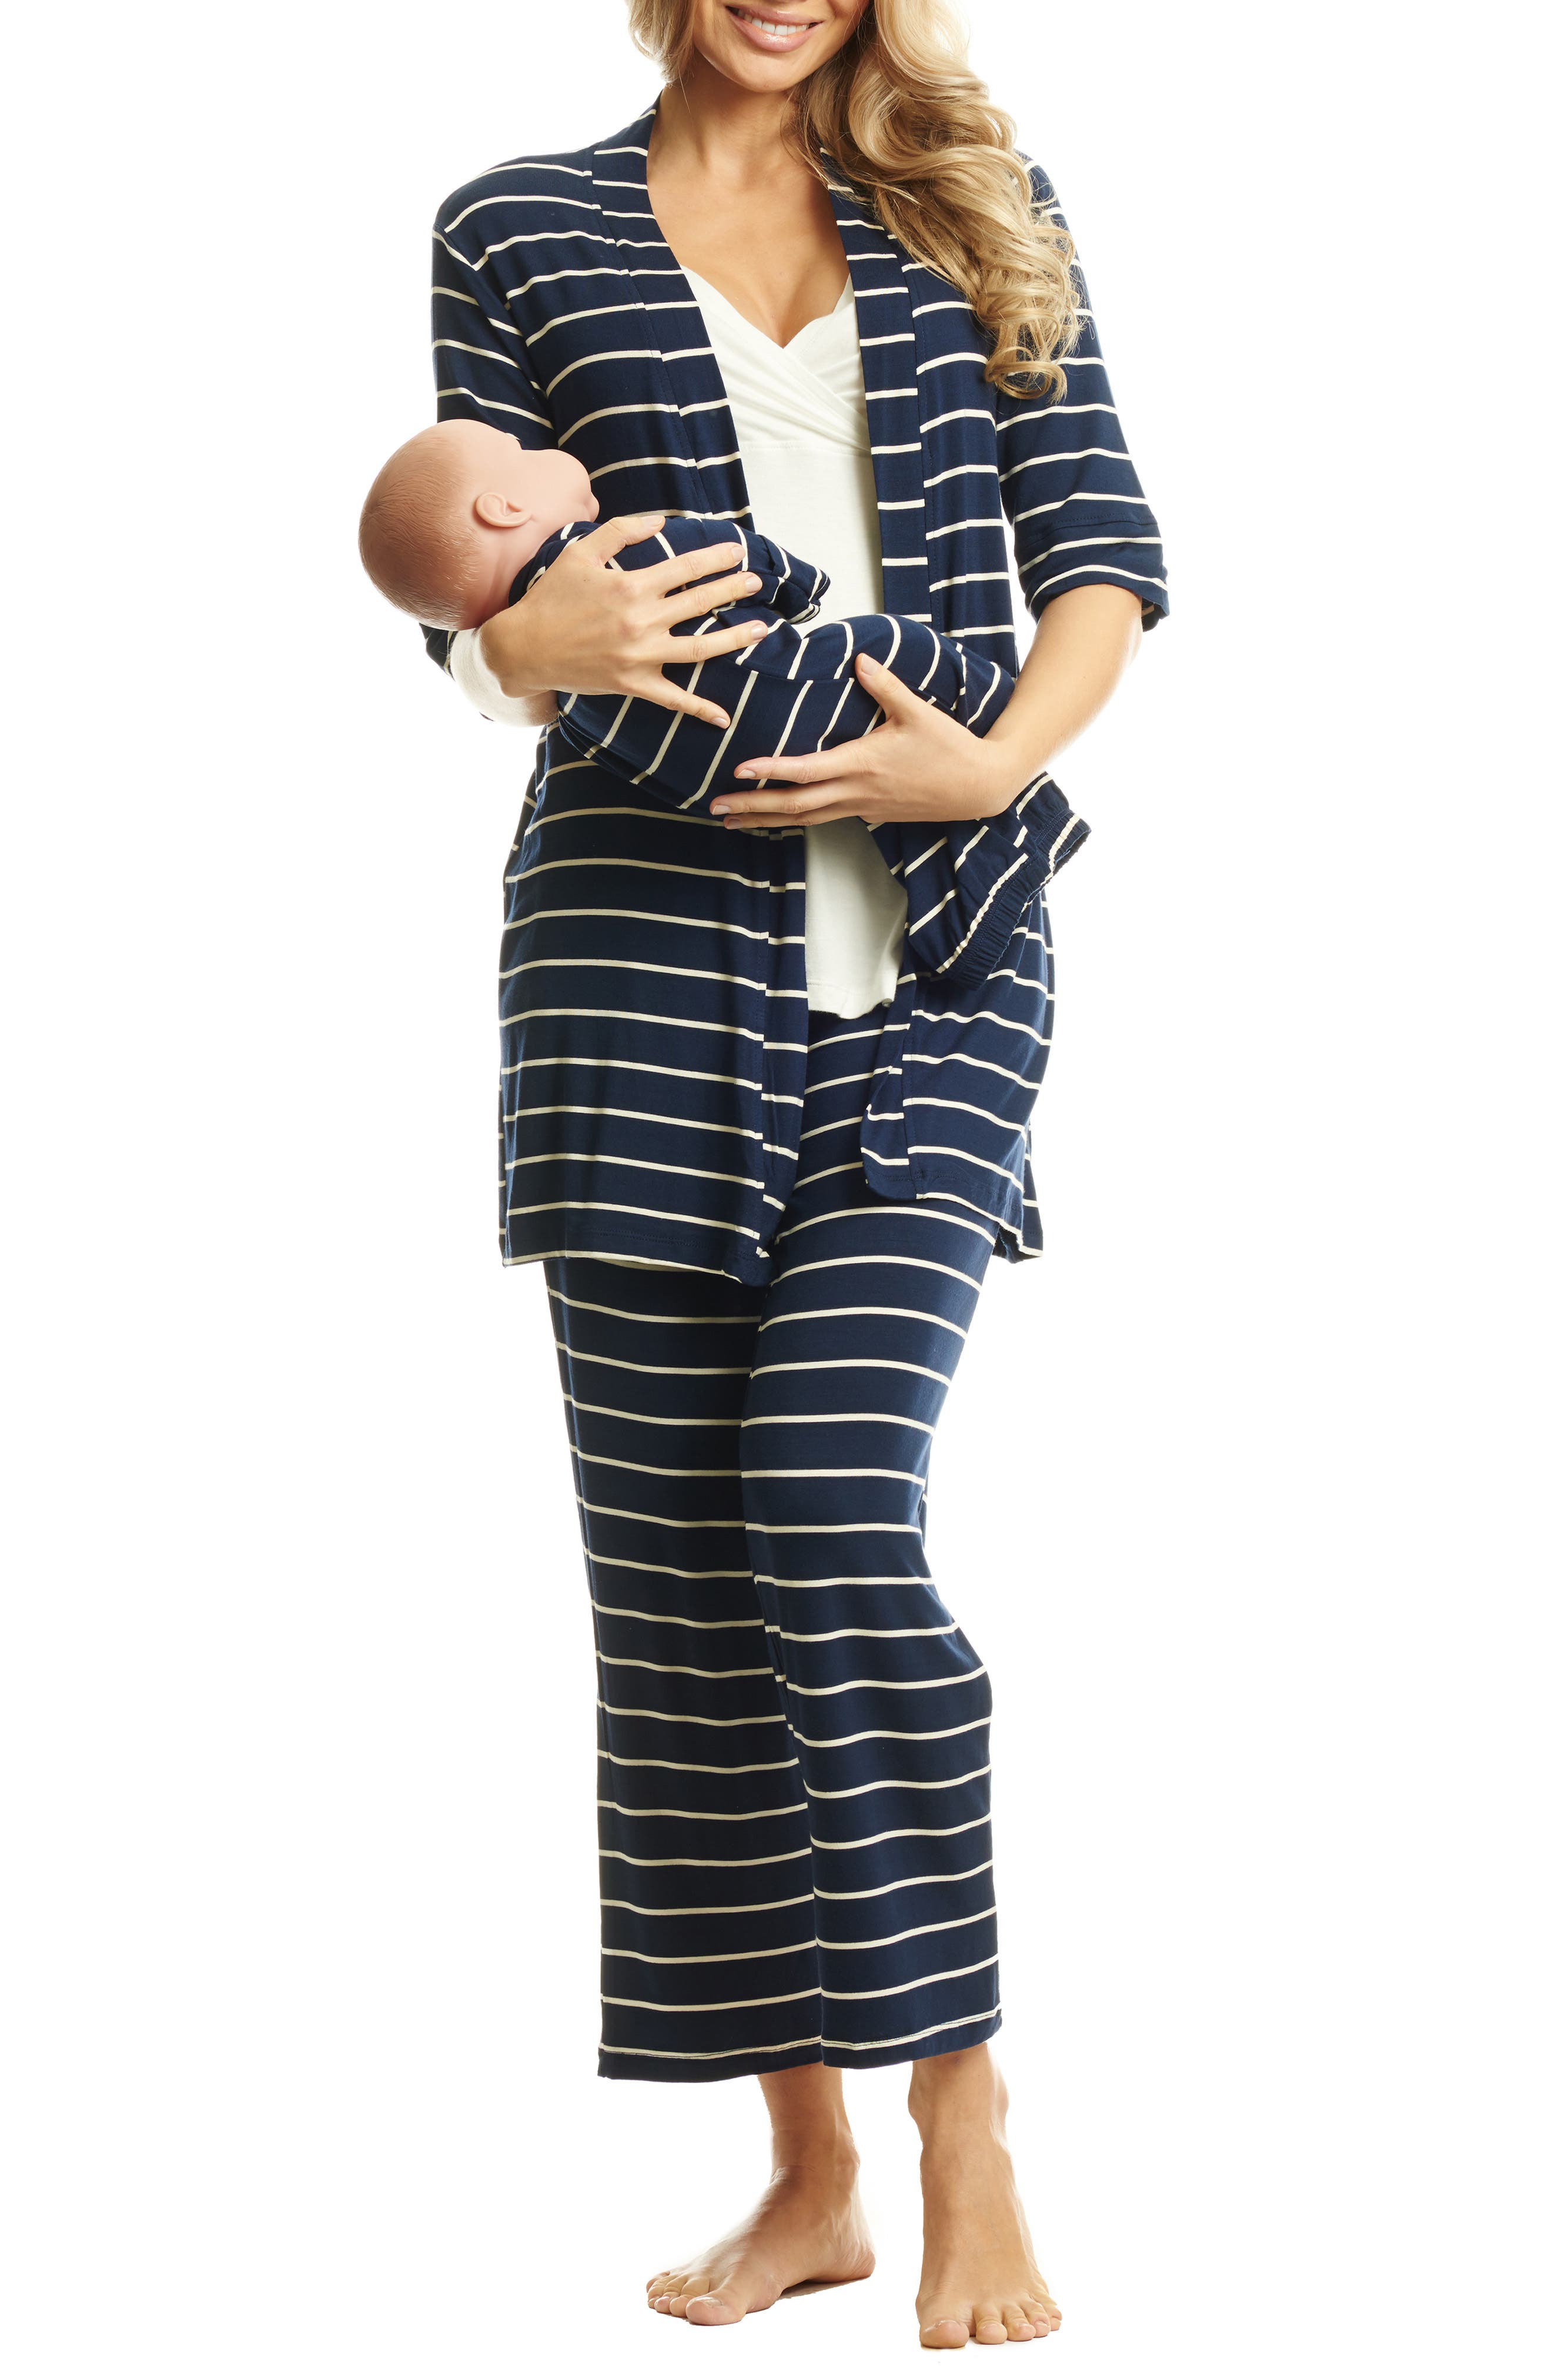 EVERLY GREY Roxanne - During & After 5-Piece Maternity Sleepwear Set, Main, color, NAVY